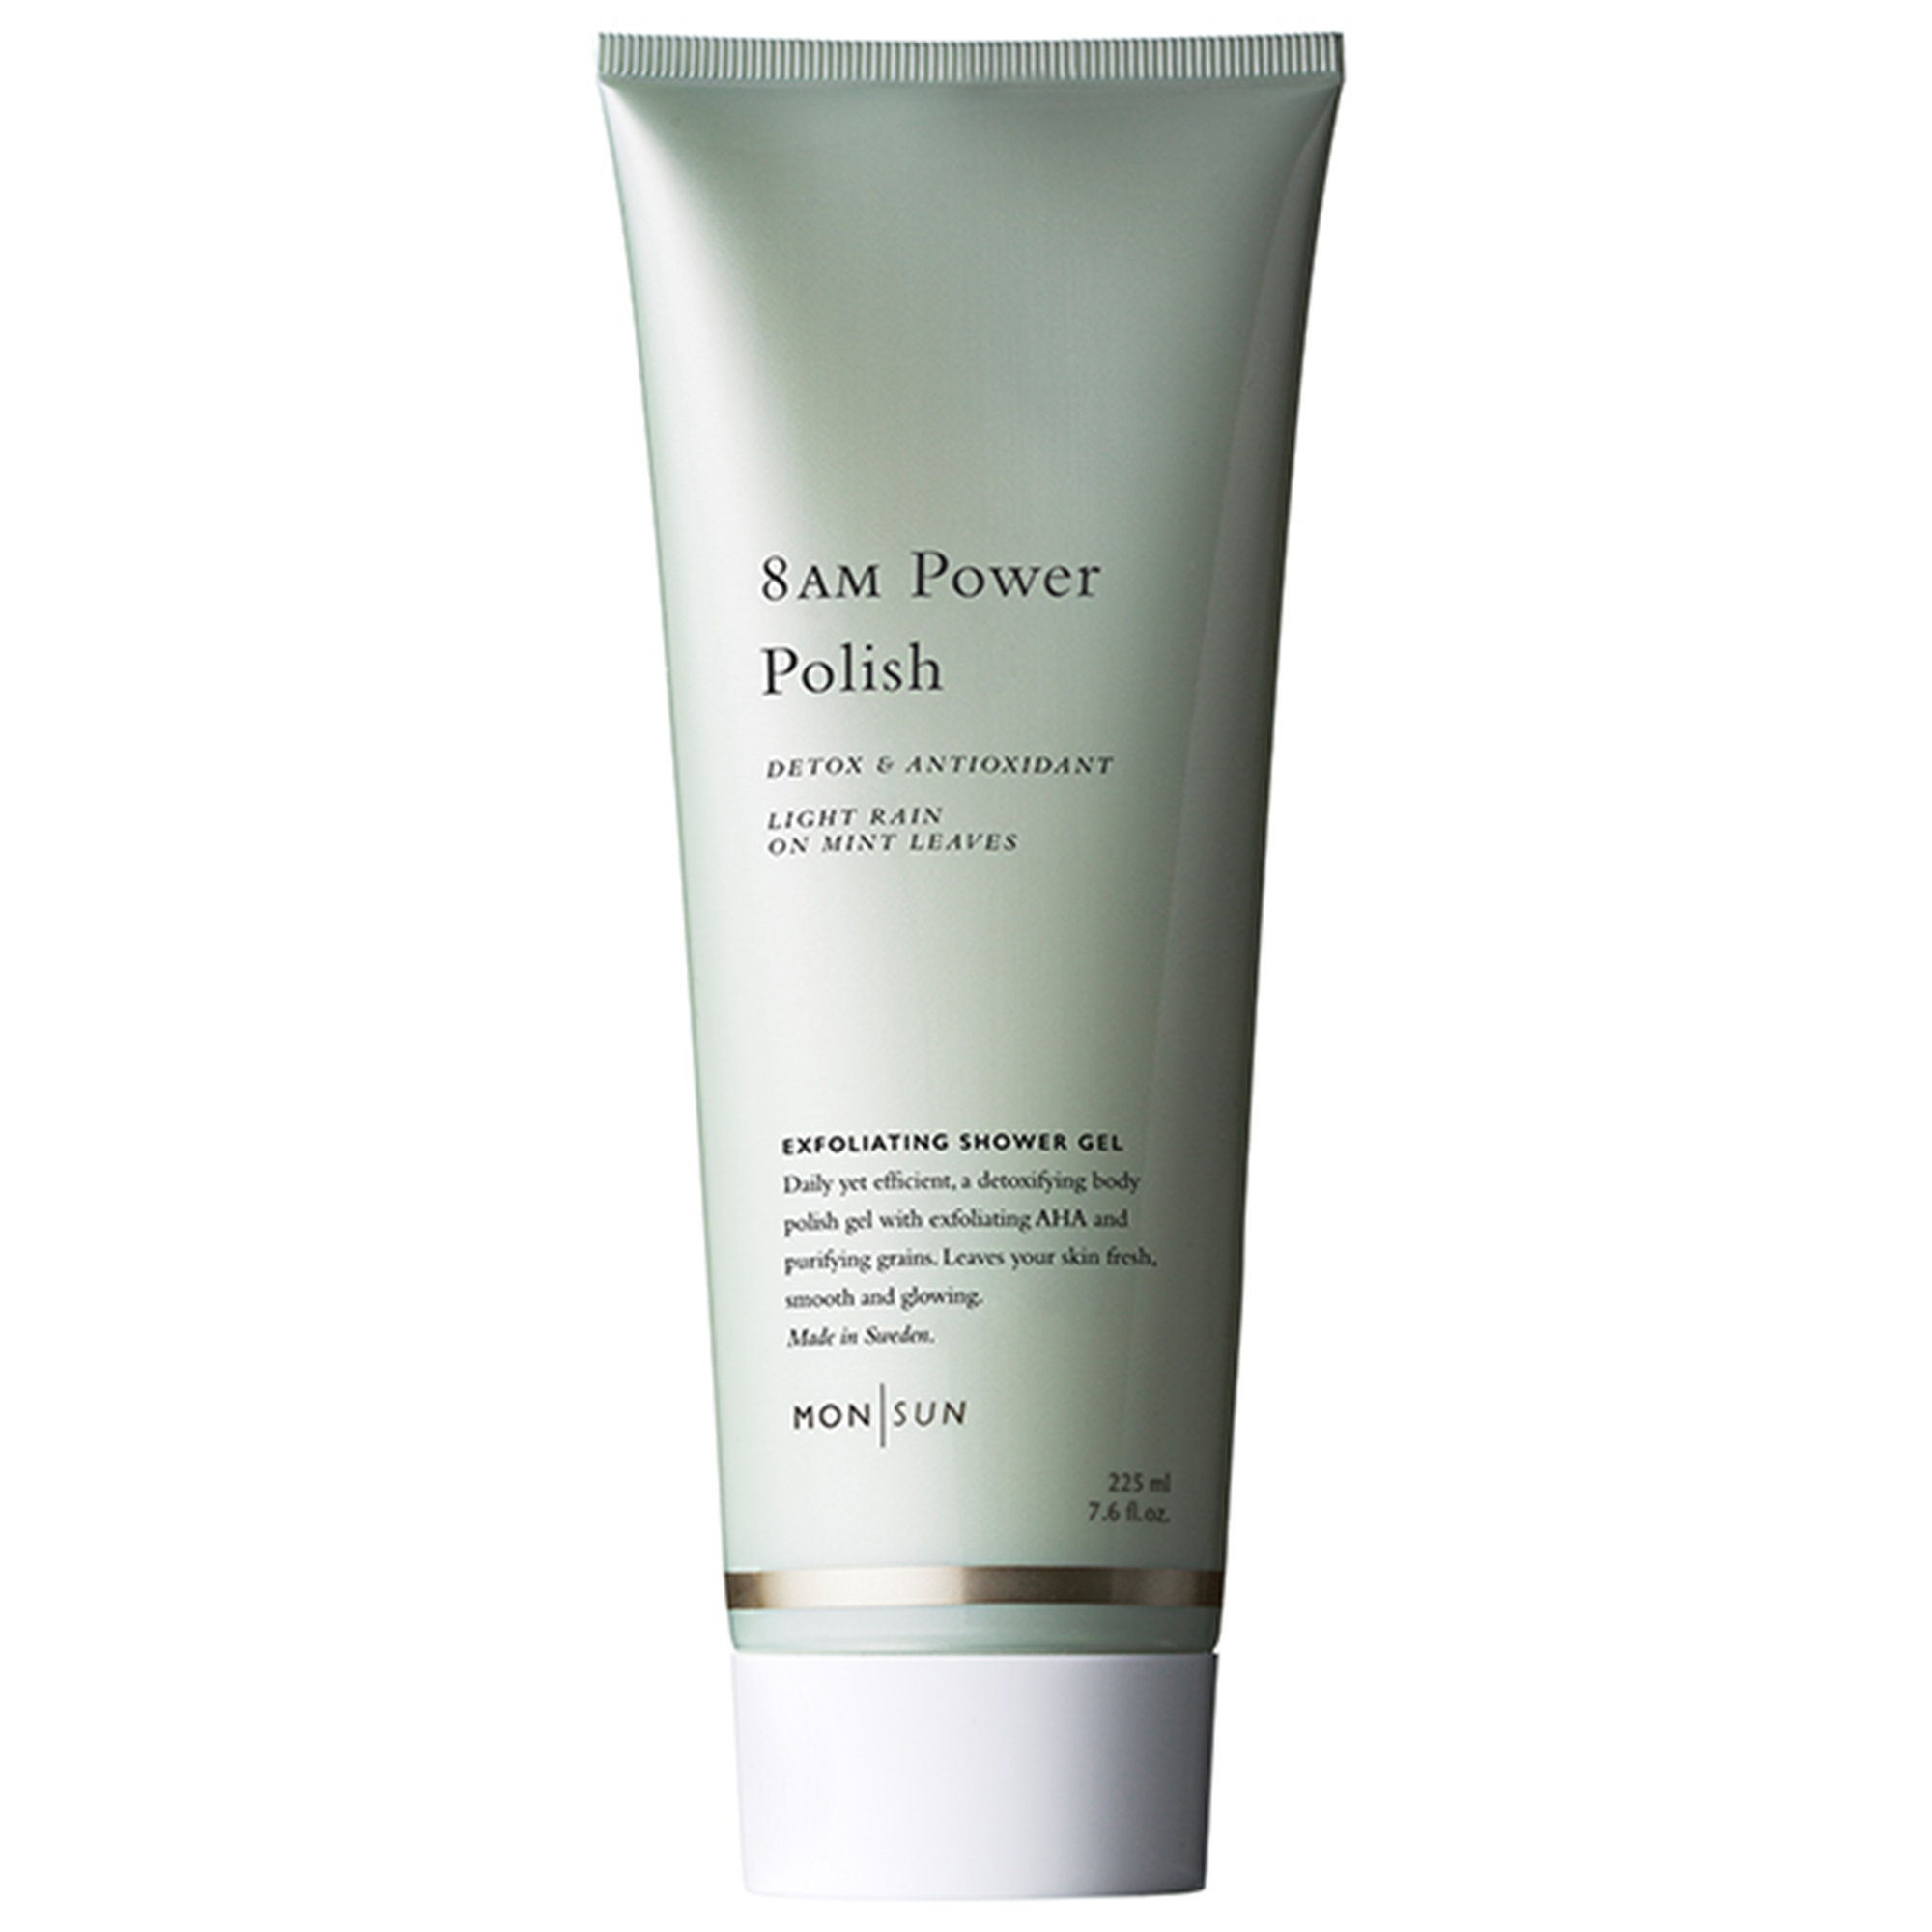 8AM Power-Polish Detox & Antioxidant Exfoliating Shower Gel